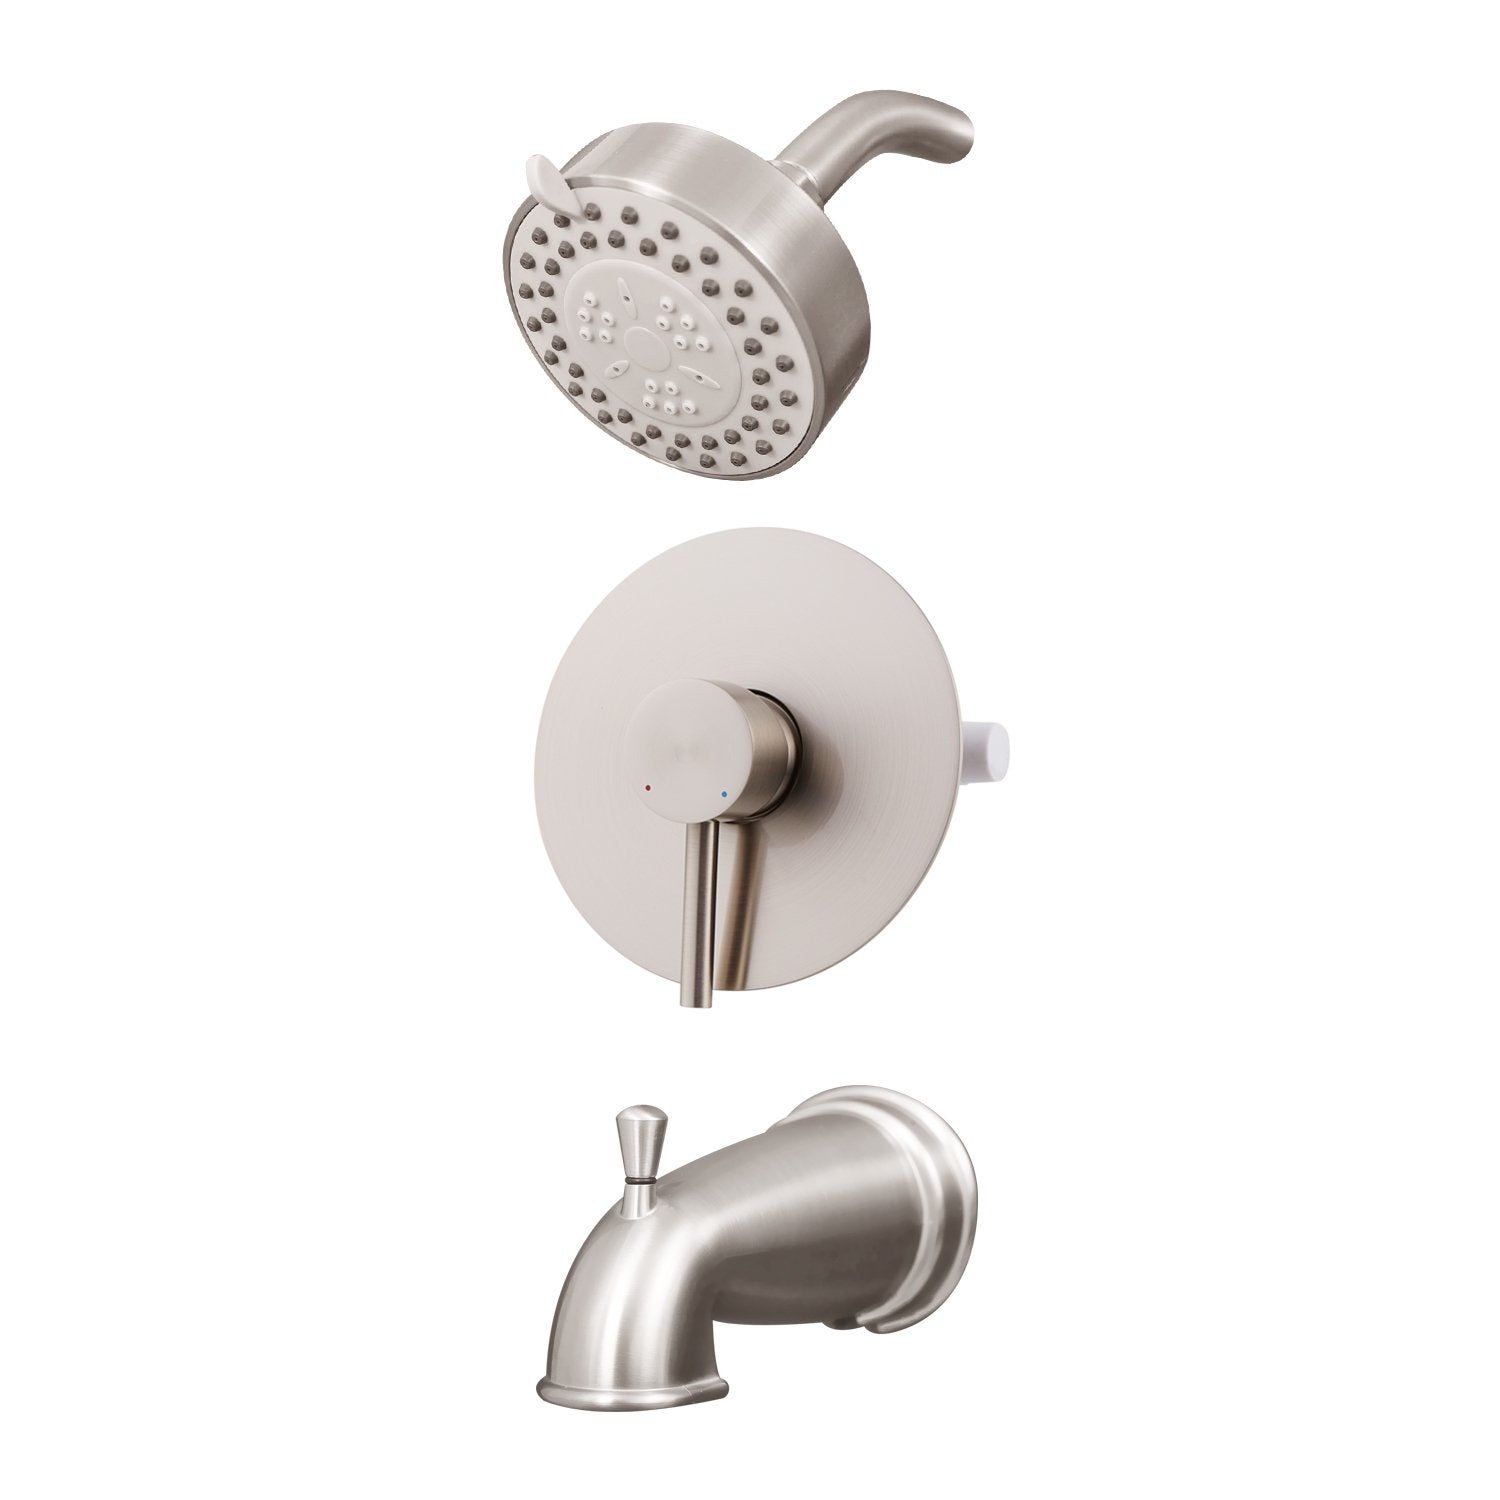 DAX Shower System, Faucet Set, with Shower and Tub Trim, Wall Mount, Brass Body, Brushed Nickel Finish (DAX-0306-BN)